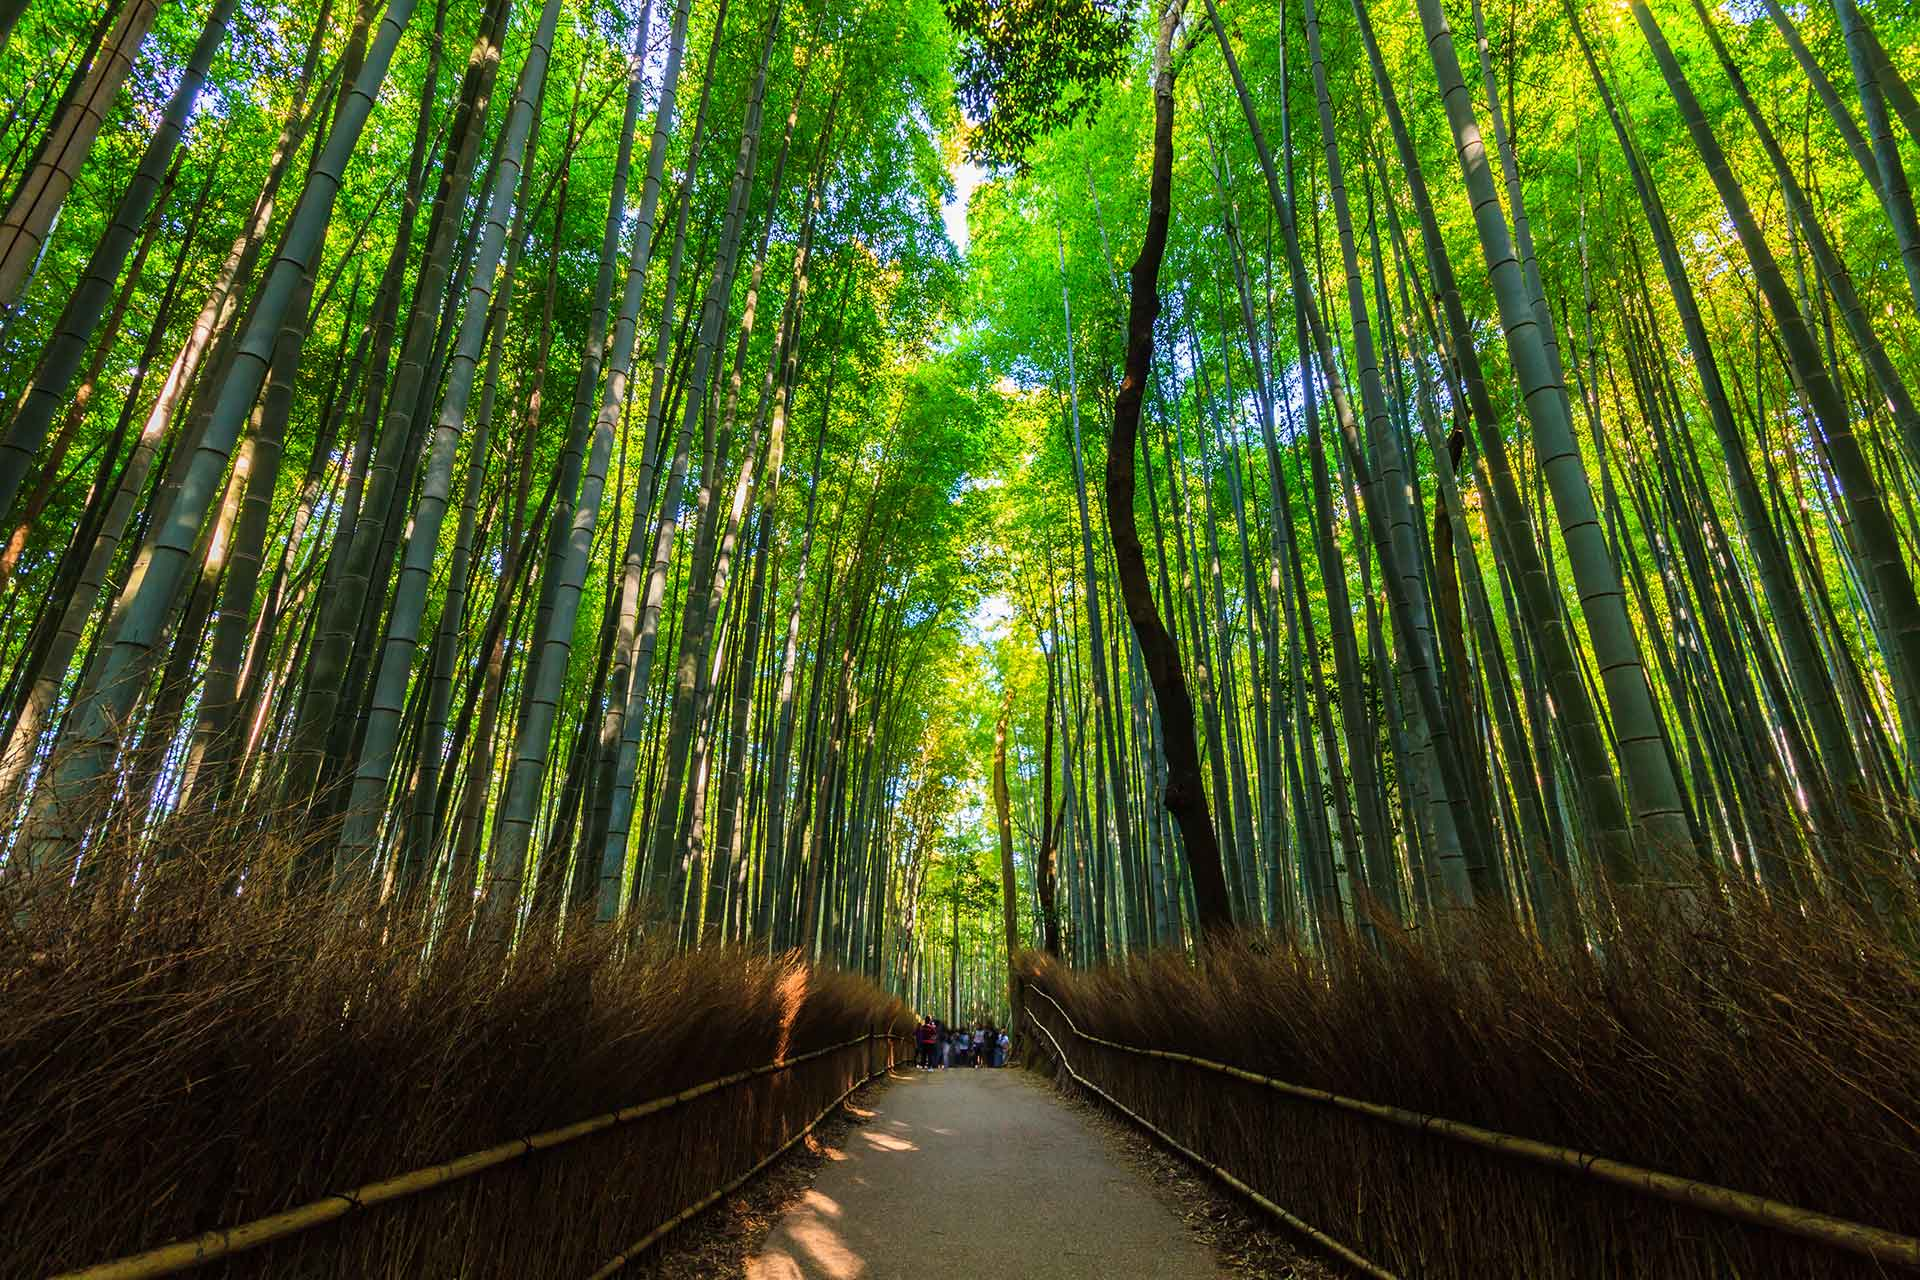 Arashiyama bamboo groves, one of the best natural sites to visit in Japan